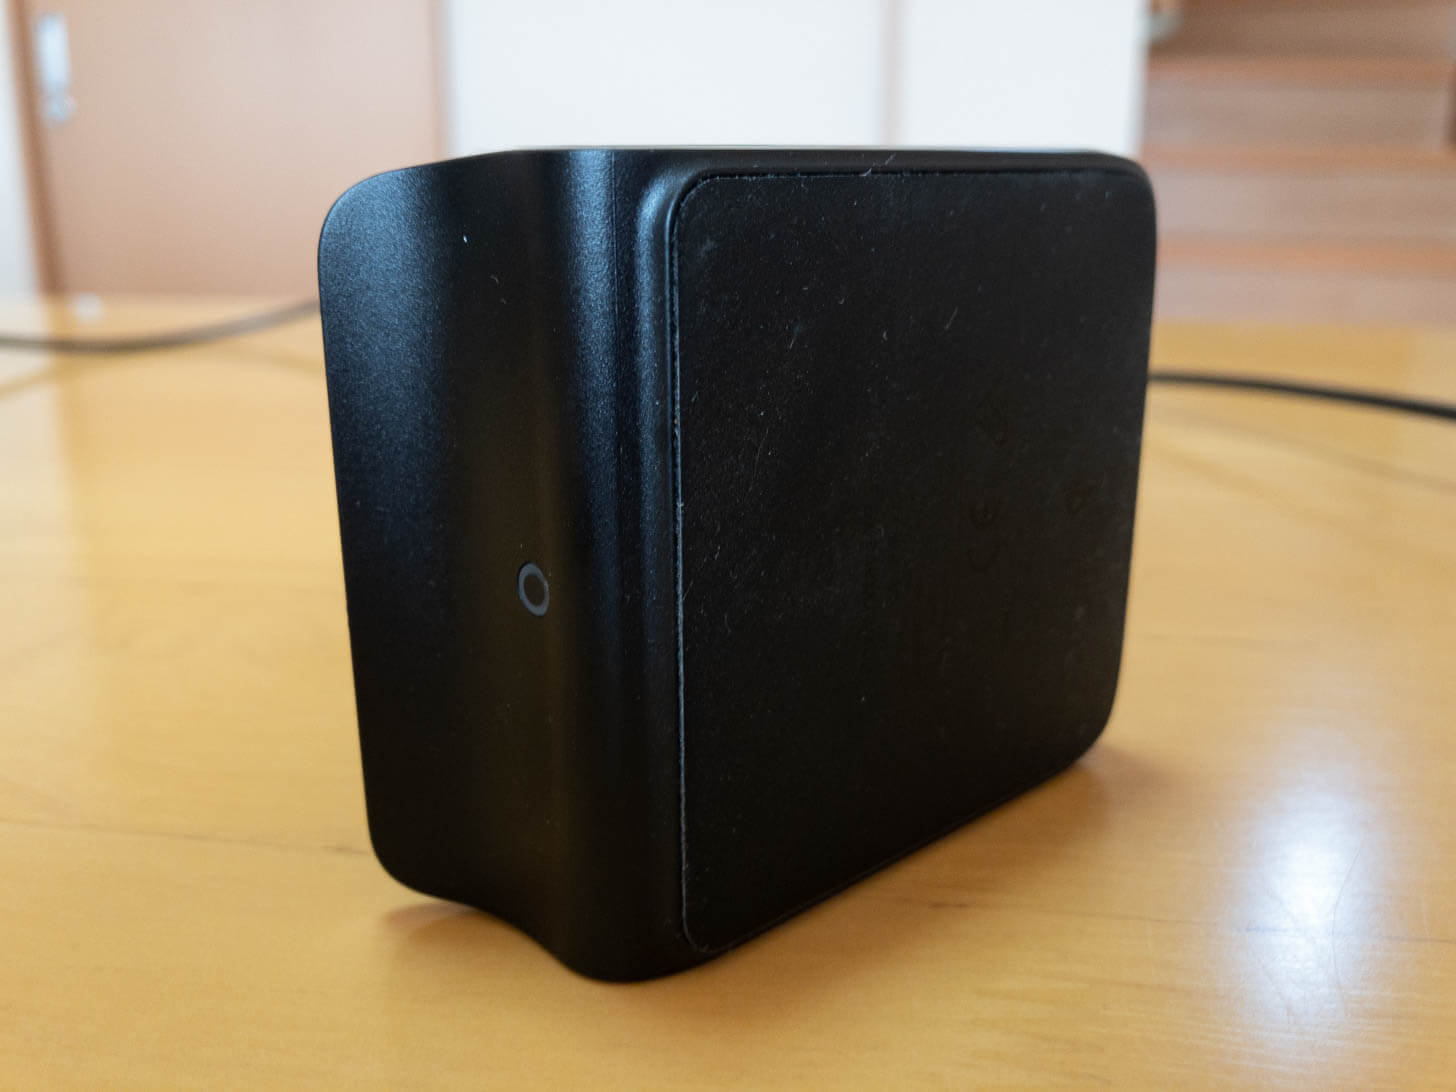 Anker wireless charger 02